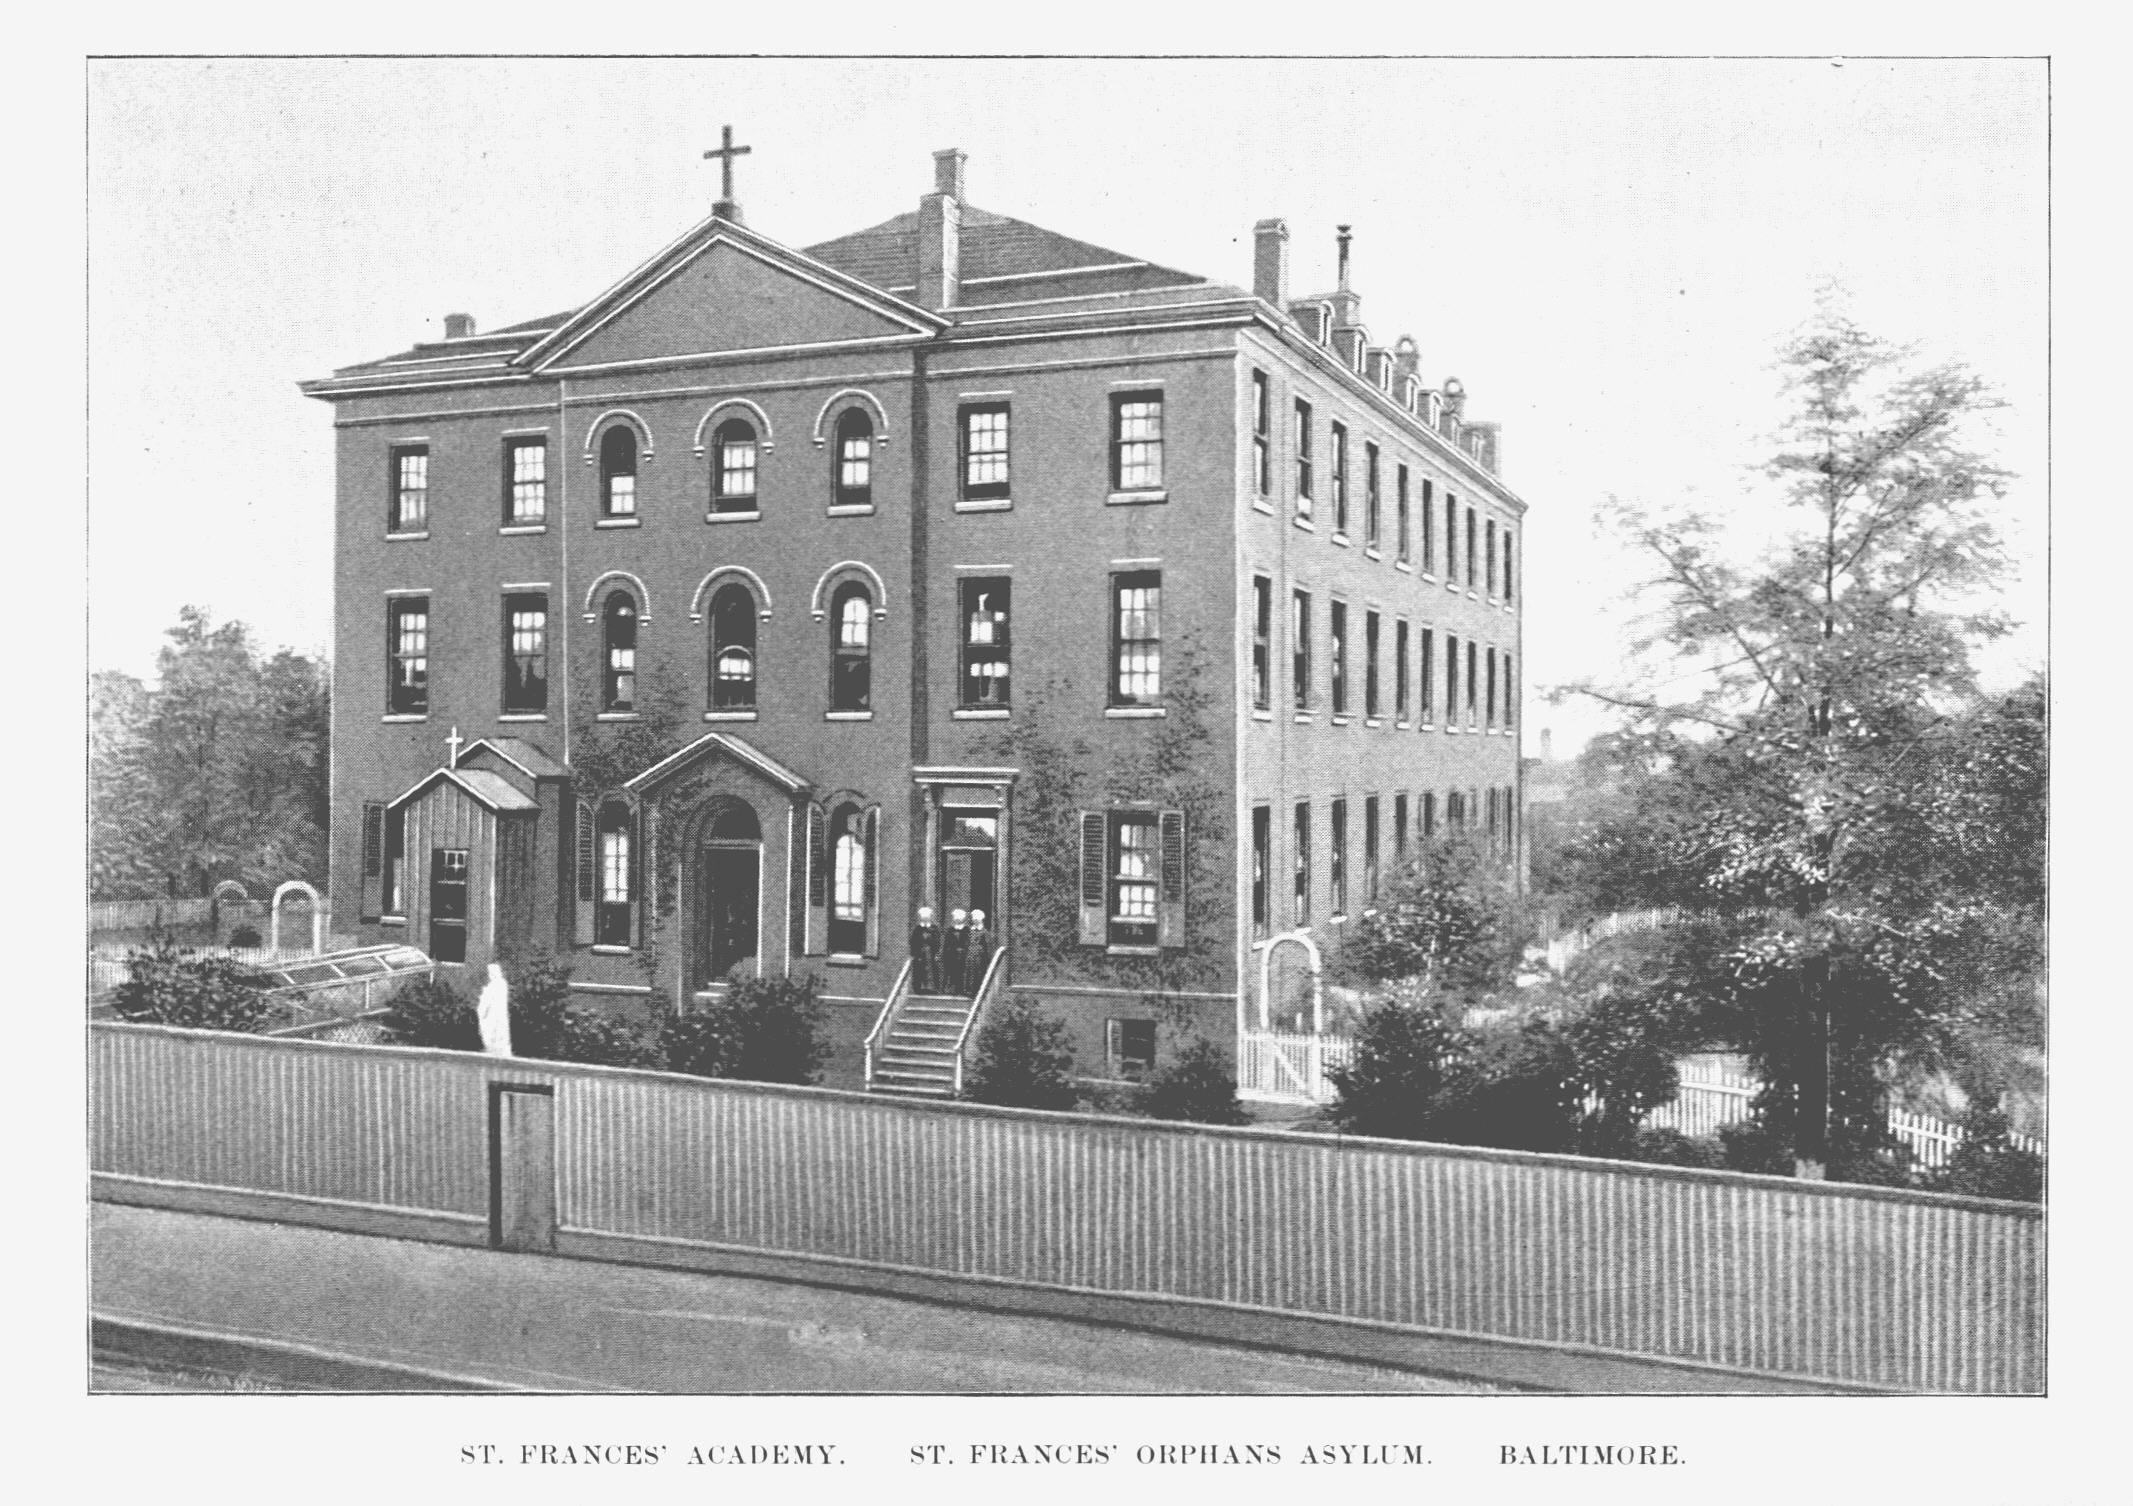 St. Frances Academy. St. Frances's Orphan Asylum. Message of Frank Brown, Governor of Maryland, to the General Assembly at its Regular Session, January, 1894 (Baltimore: Wm. J.C. Dullany Company, 1894). Maryland State Archives